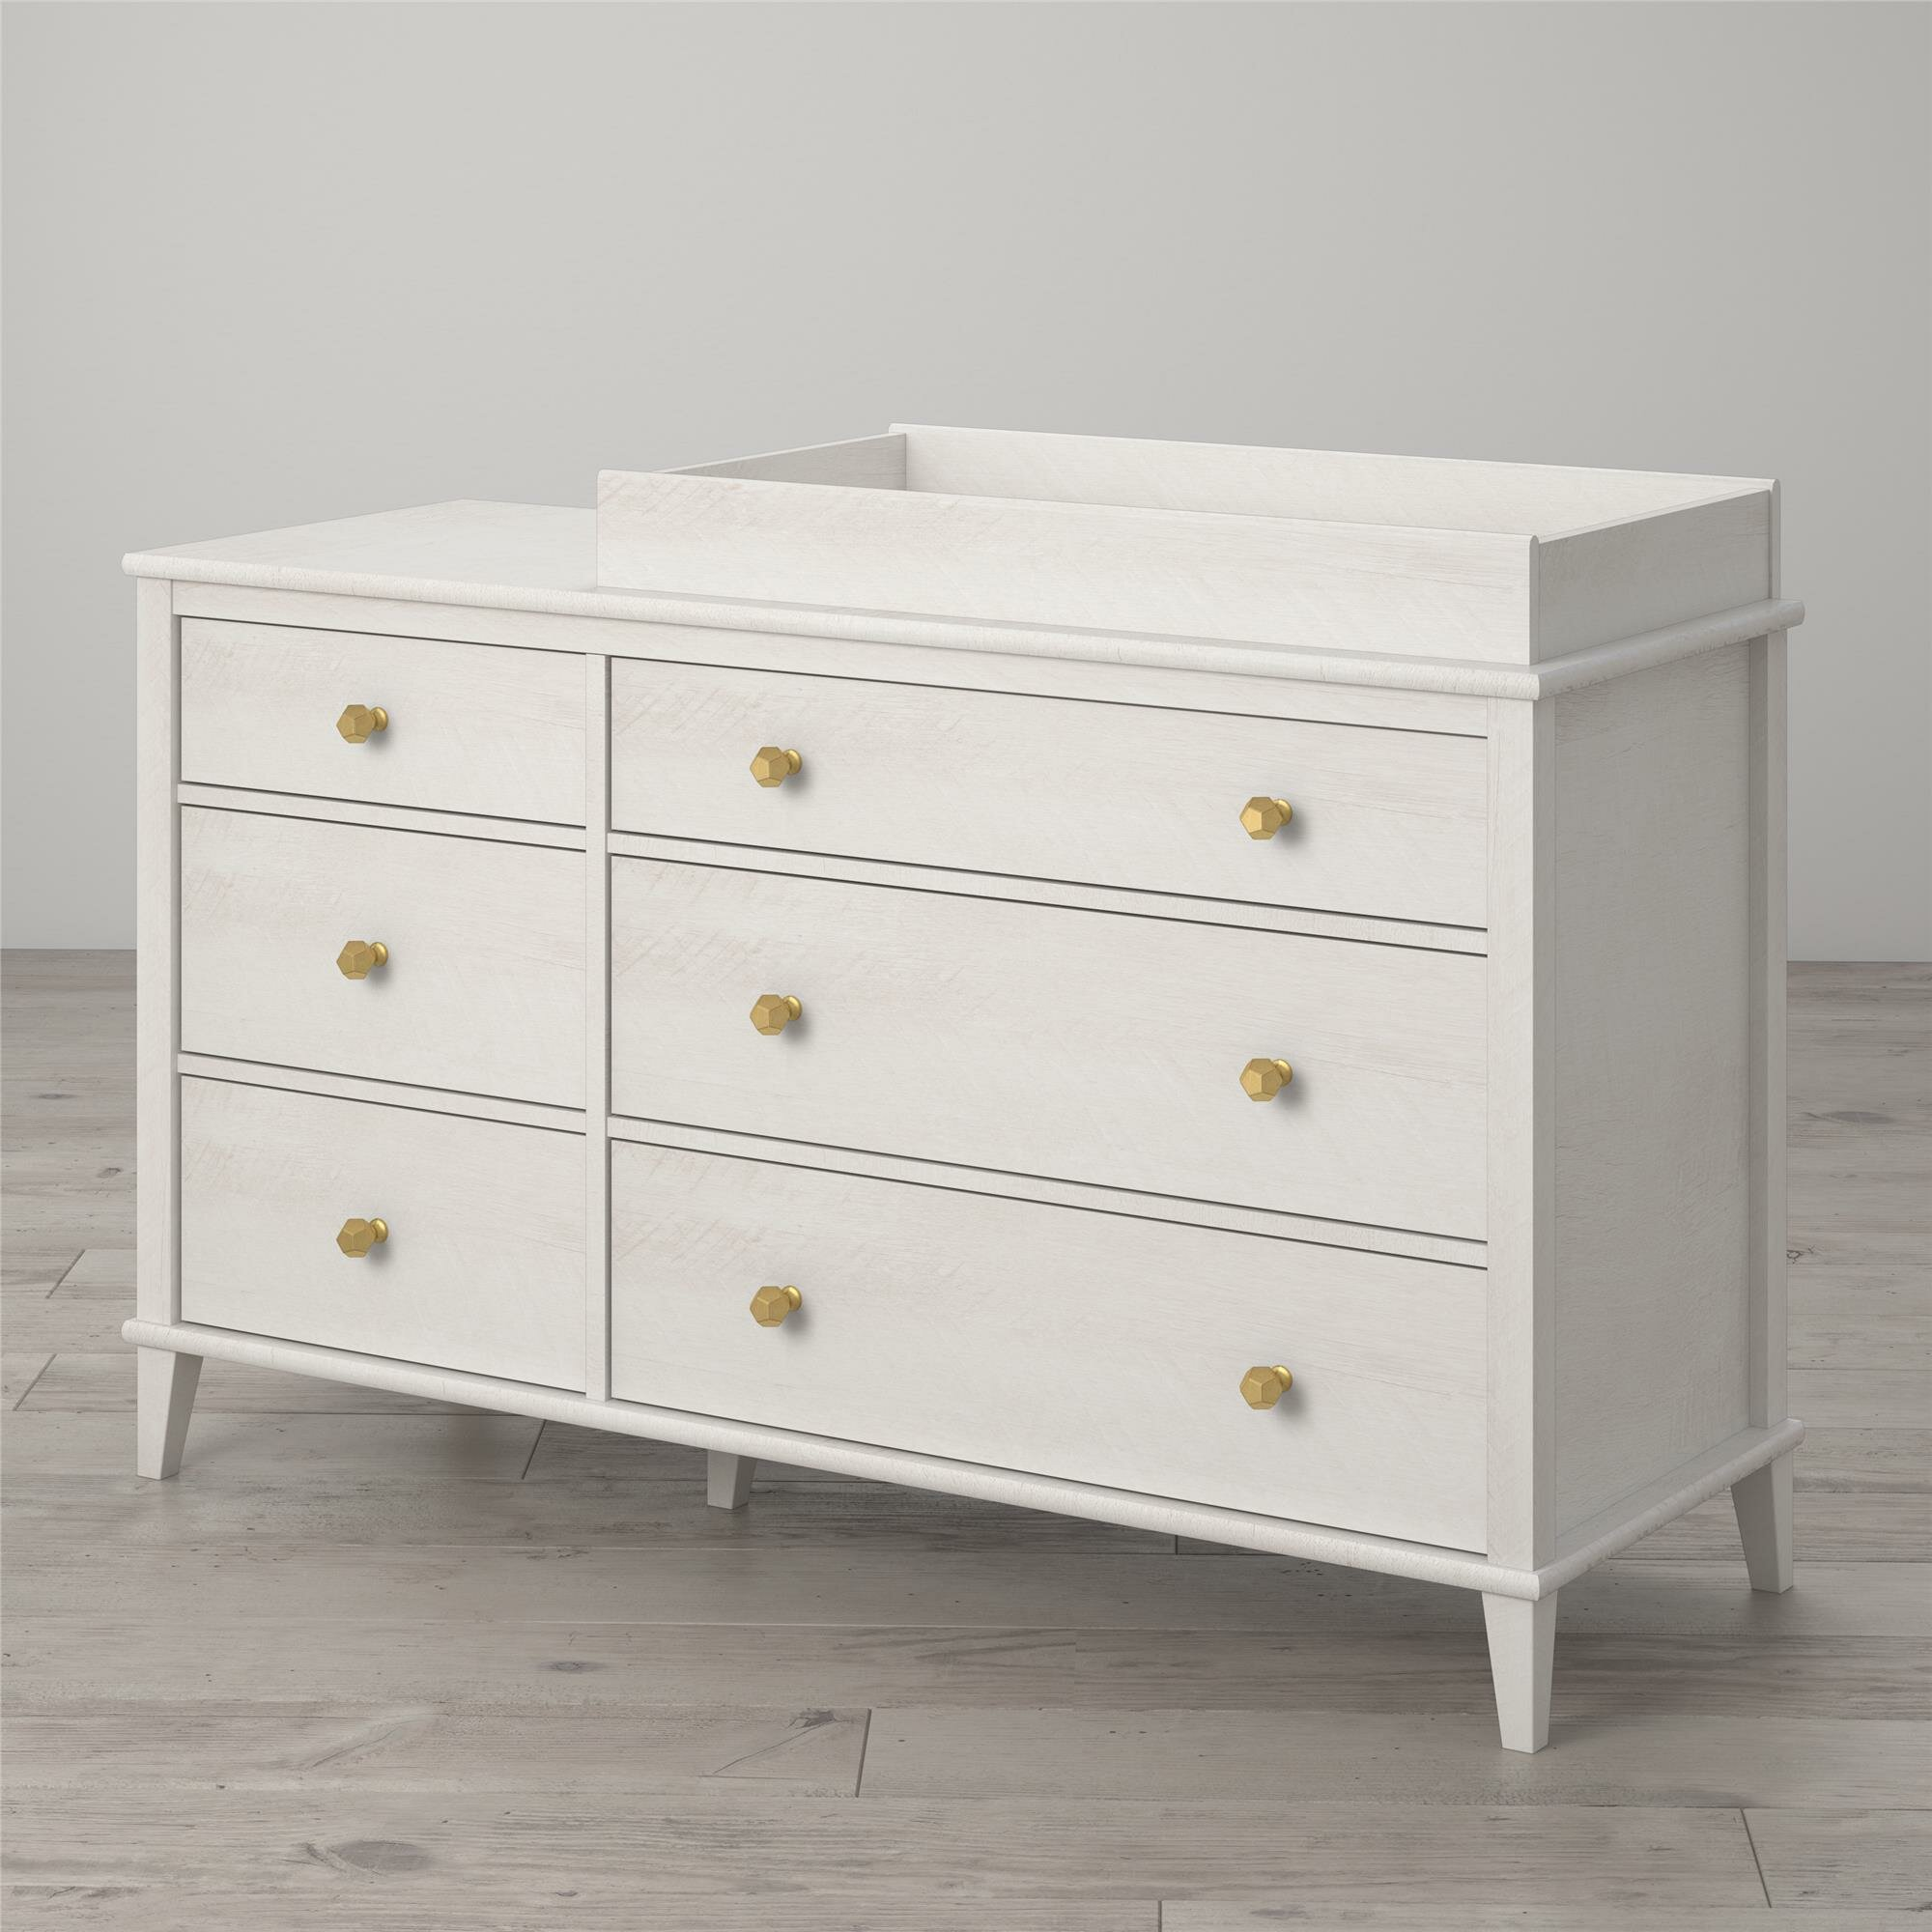 Image of: Little Seeds Monarch Hill Poppy Changing Table Dresser Reviews Wayfair